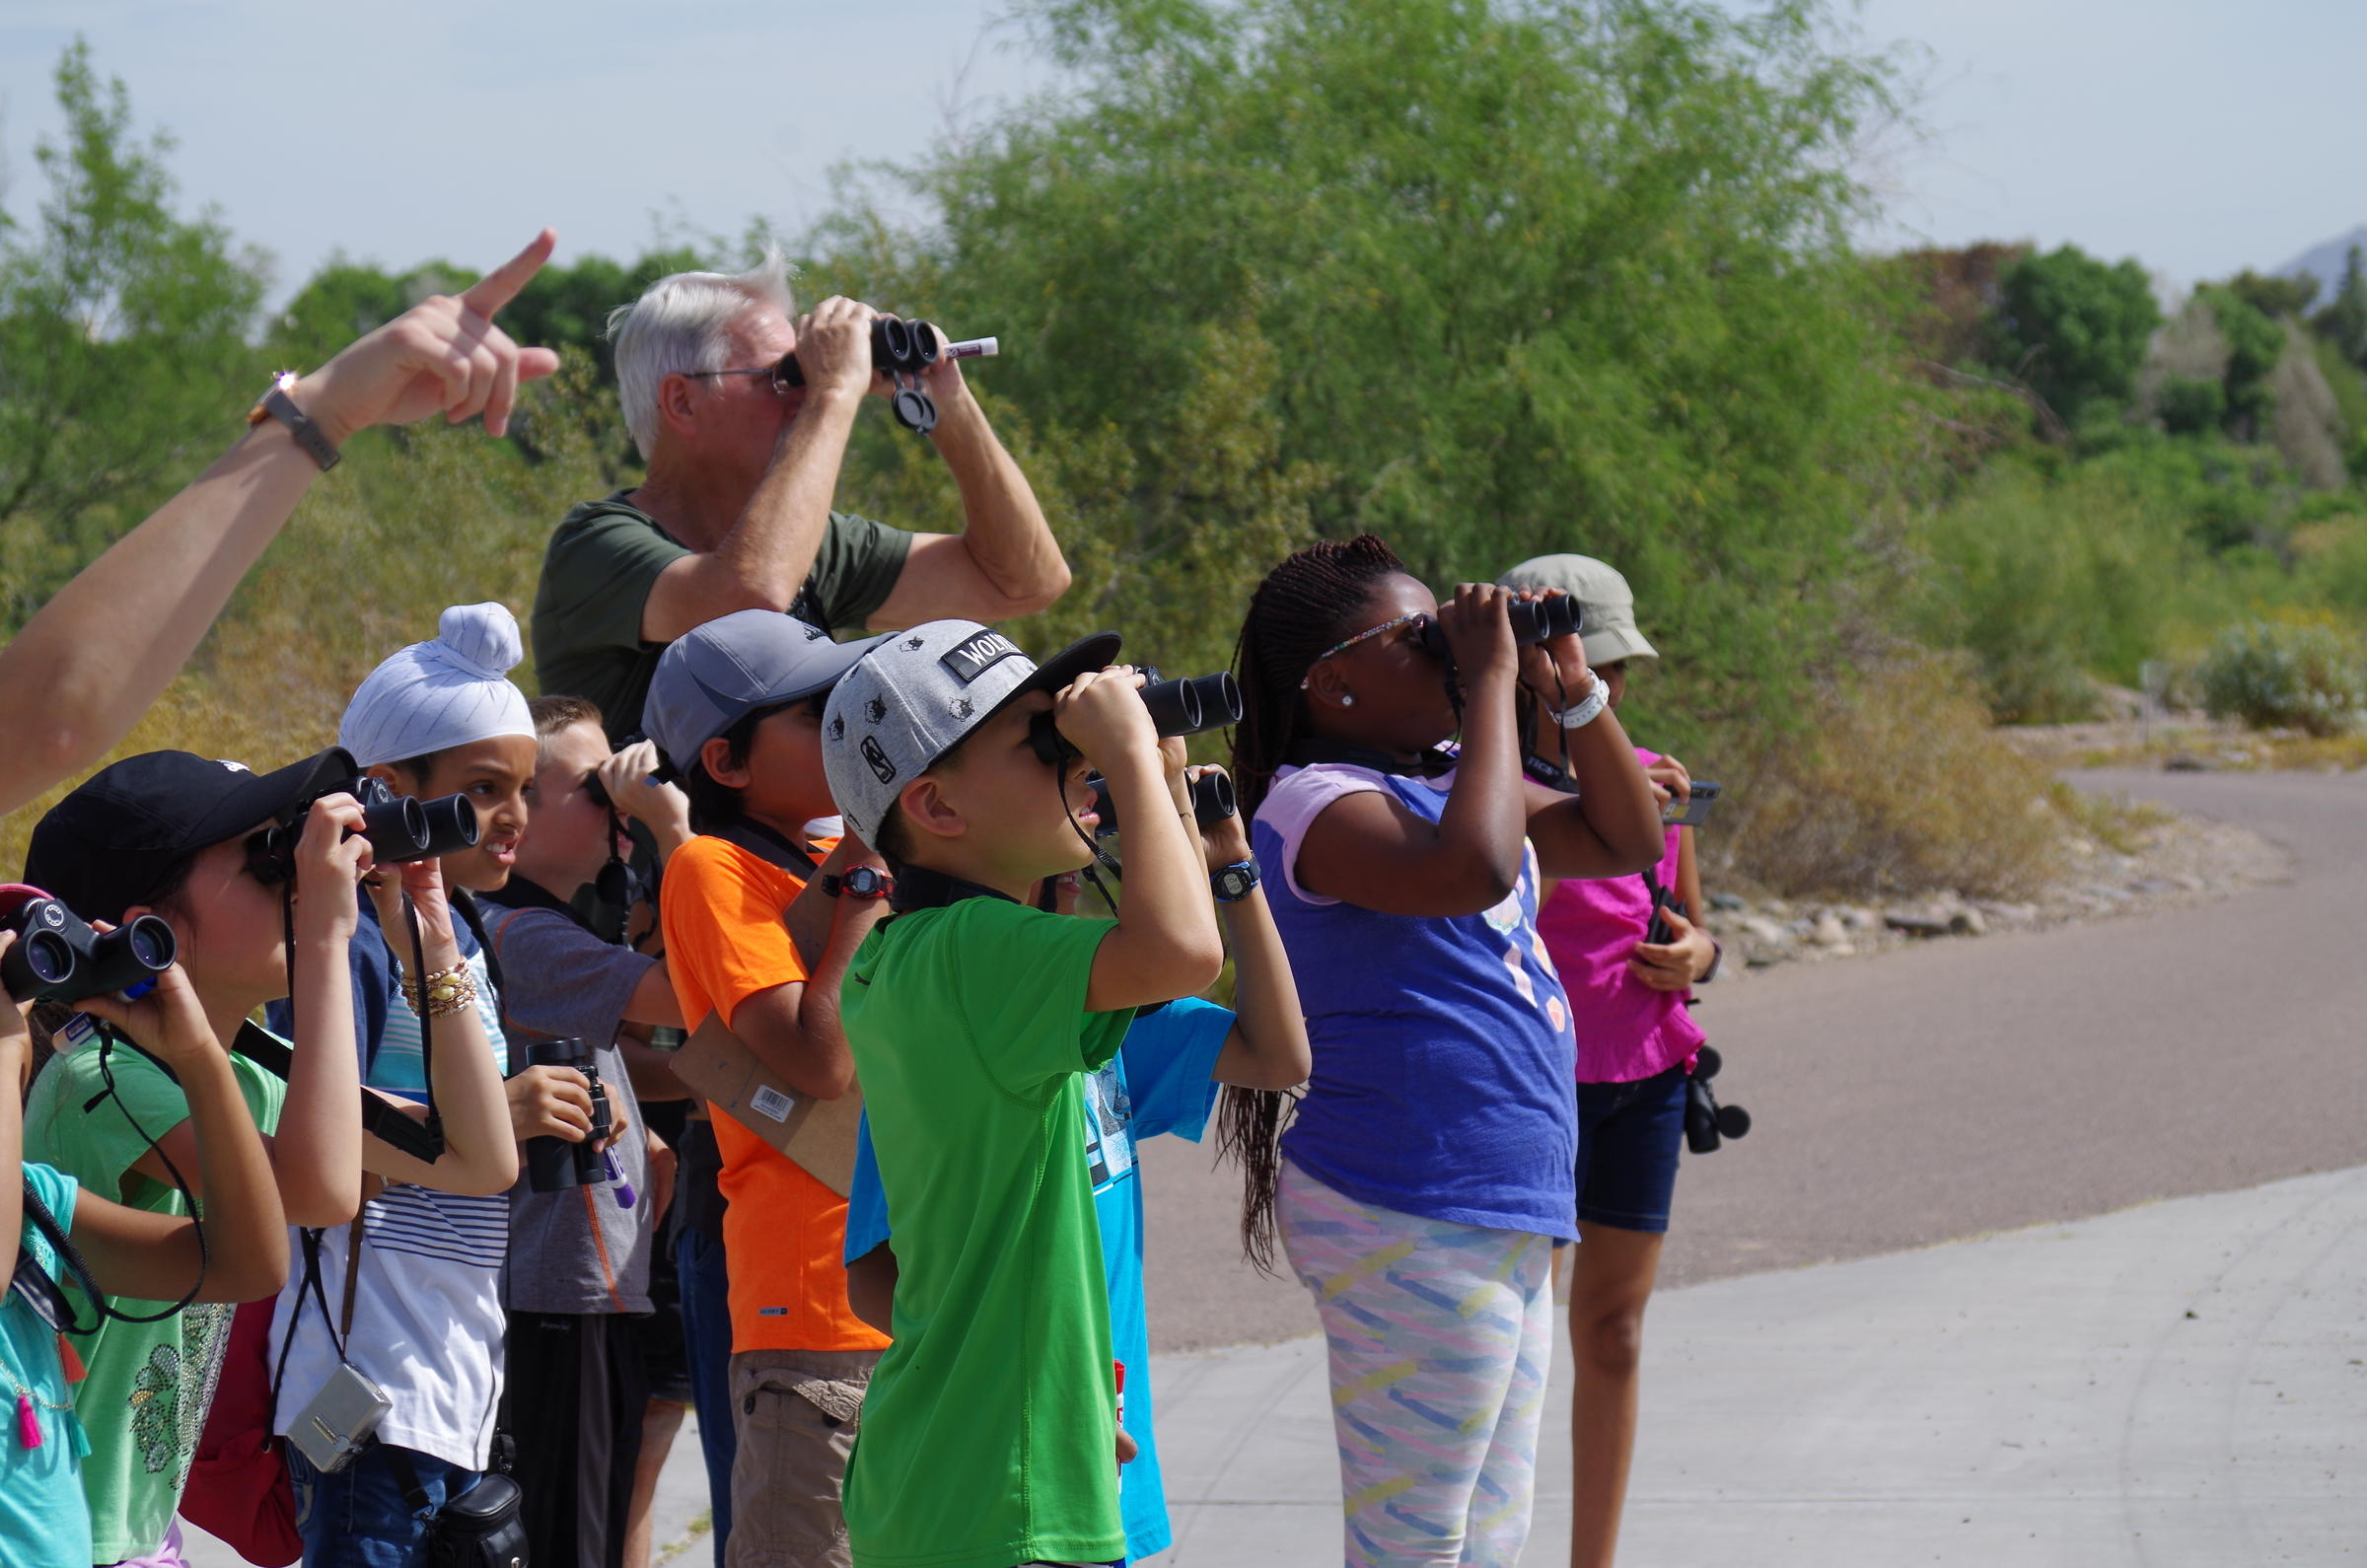 A group of birders look up into the sky with their binoculars.